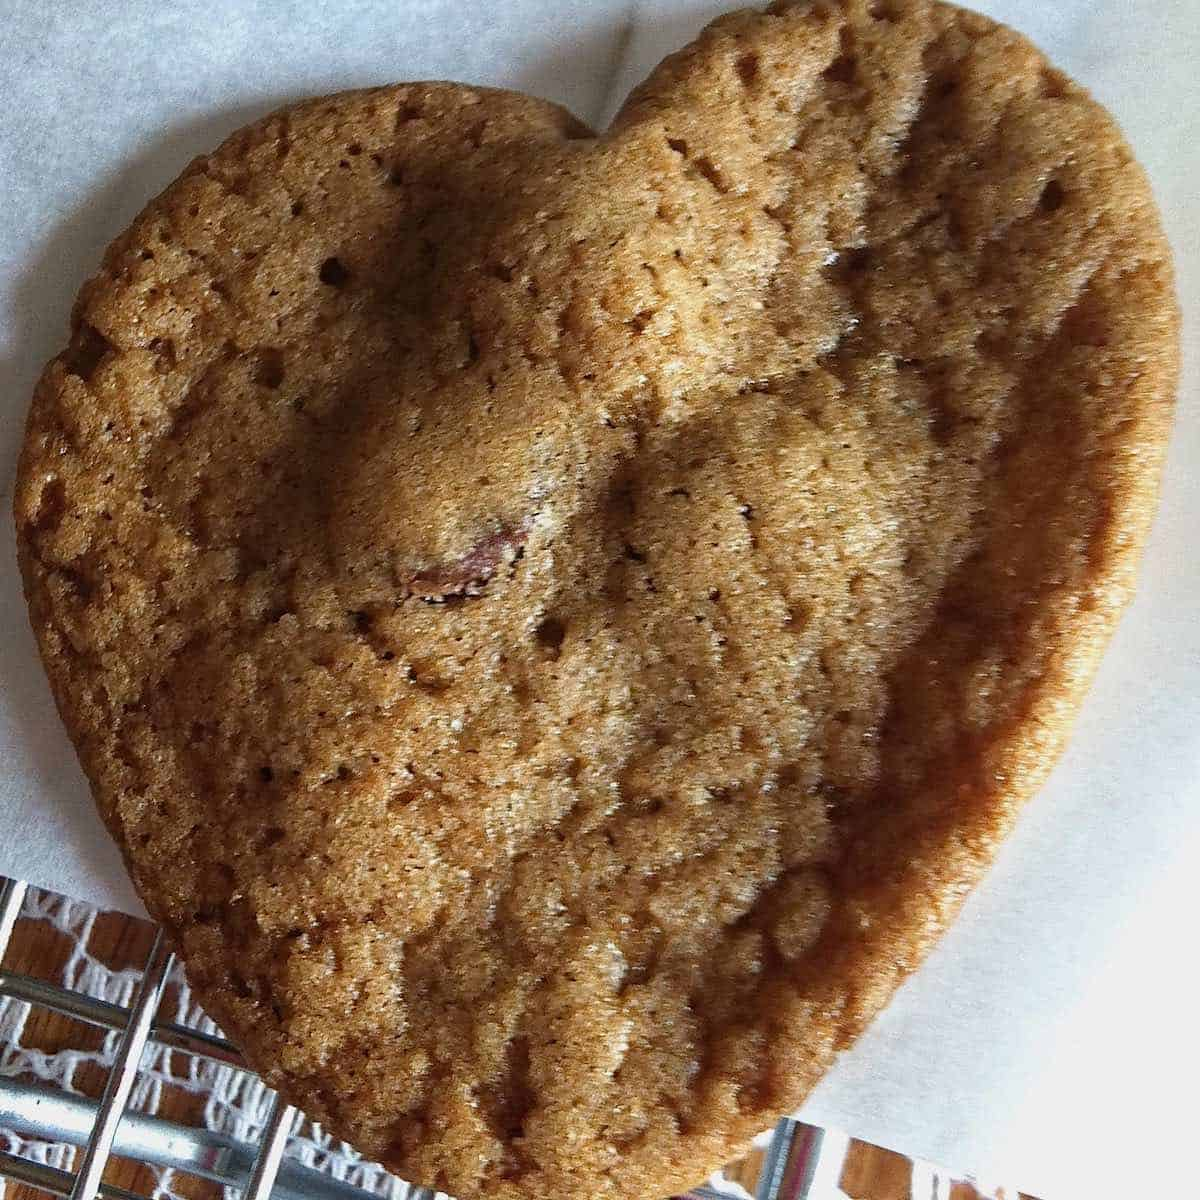 following in his light with a heart shaped cookie